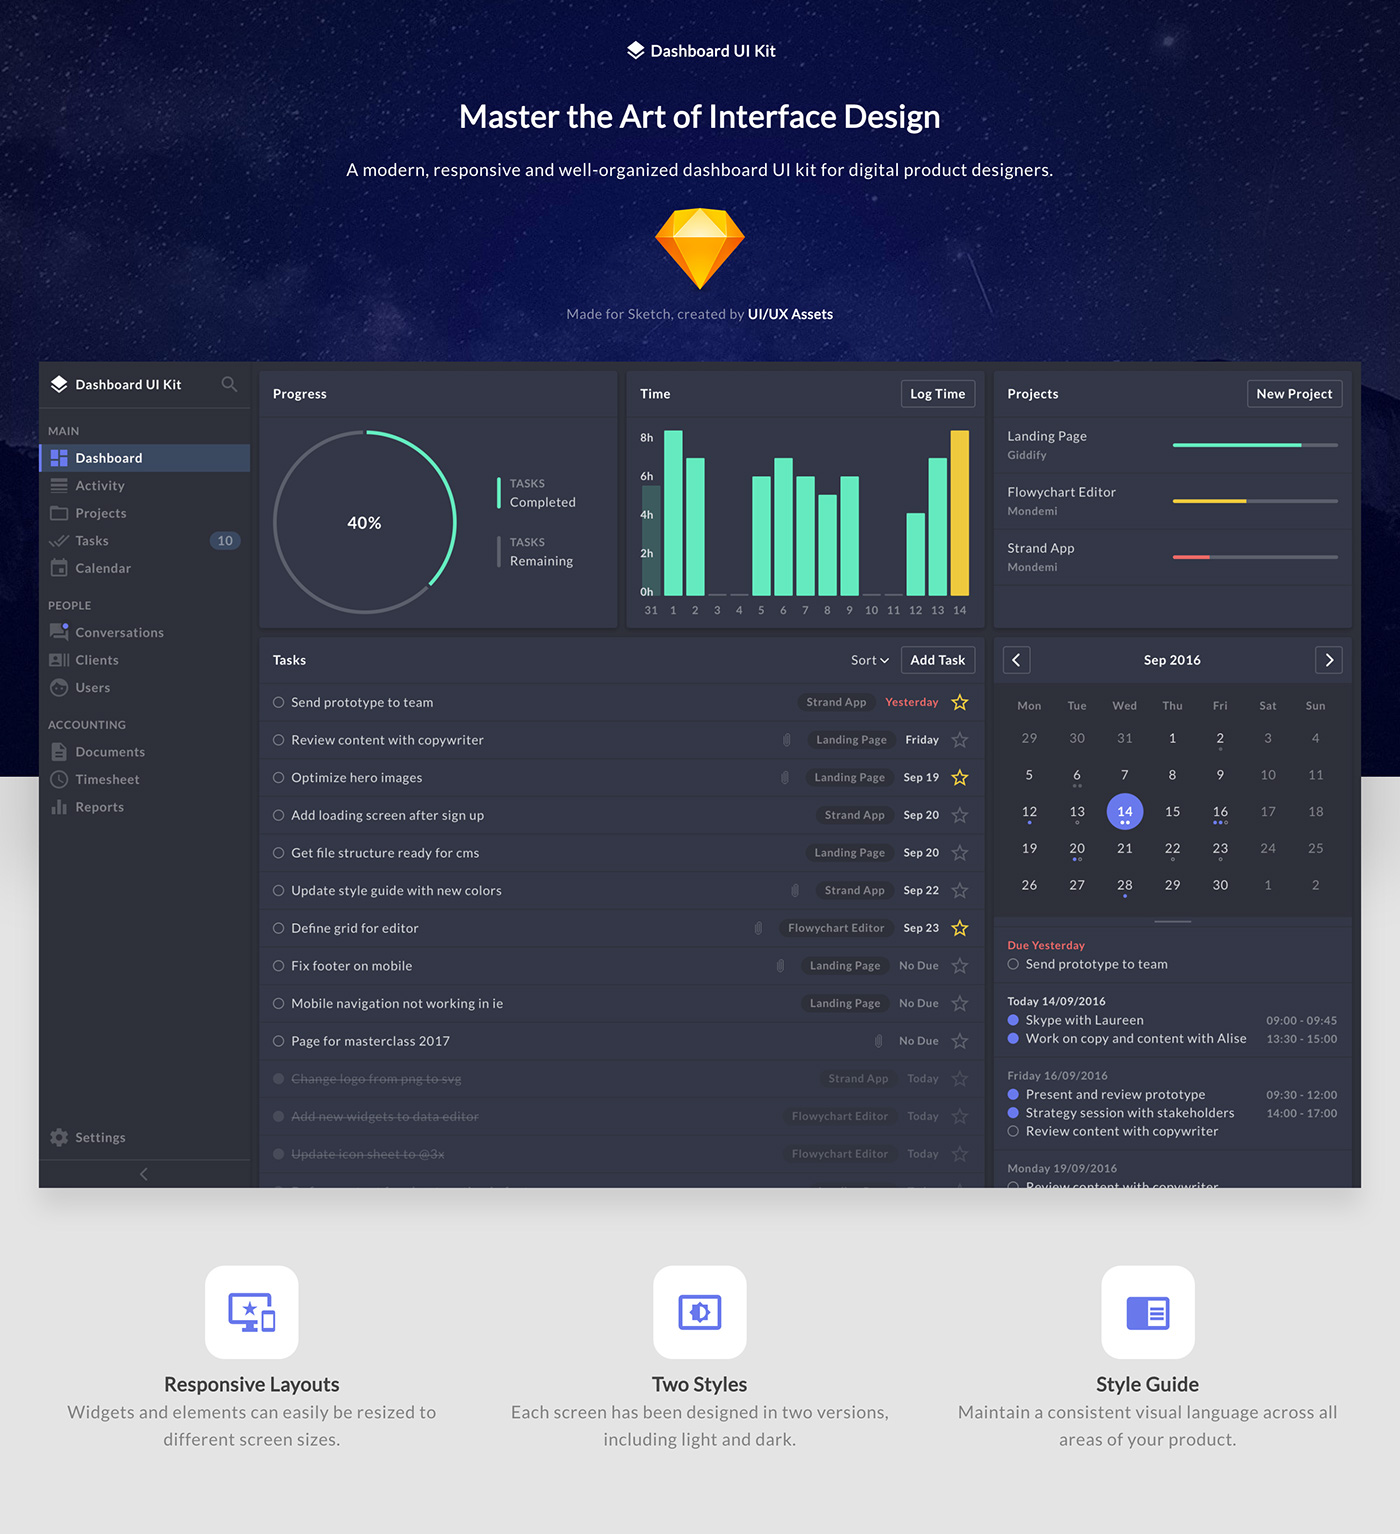 Dashboard ui kit for sketch on behance it is a responsive next gen dashboard ui kit designed taking advantage of the latest sketch features such as symbols and constraints what does this mean buycottarizona Gallery